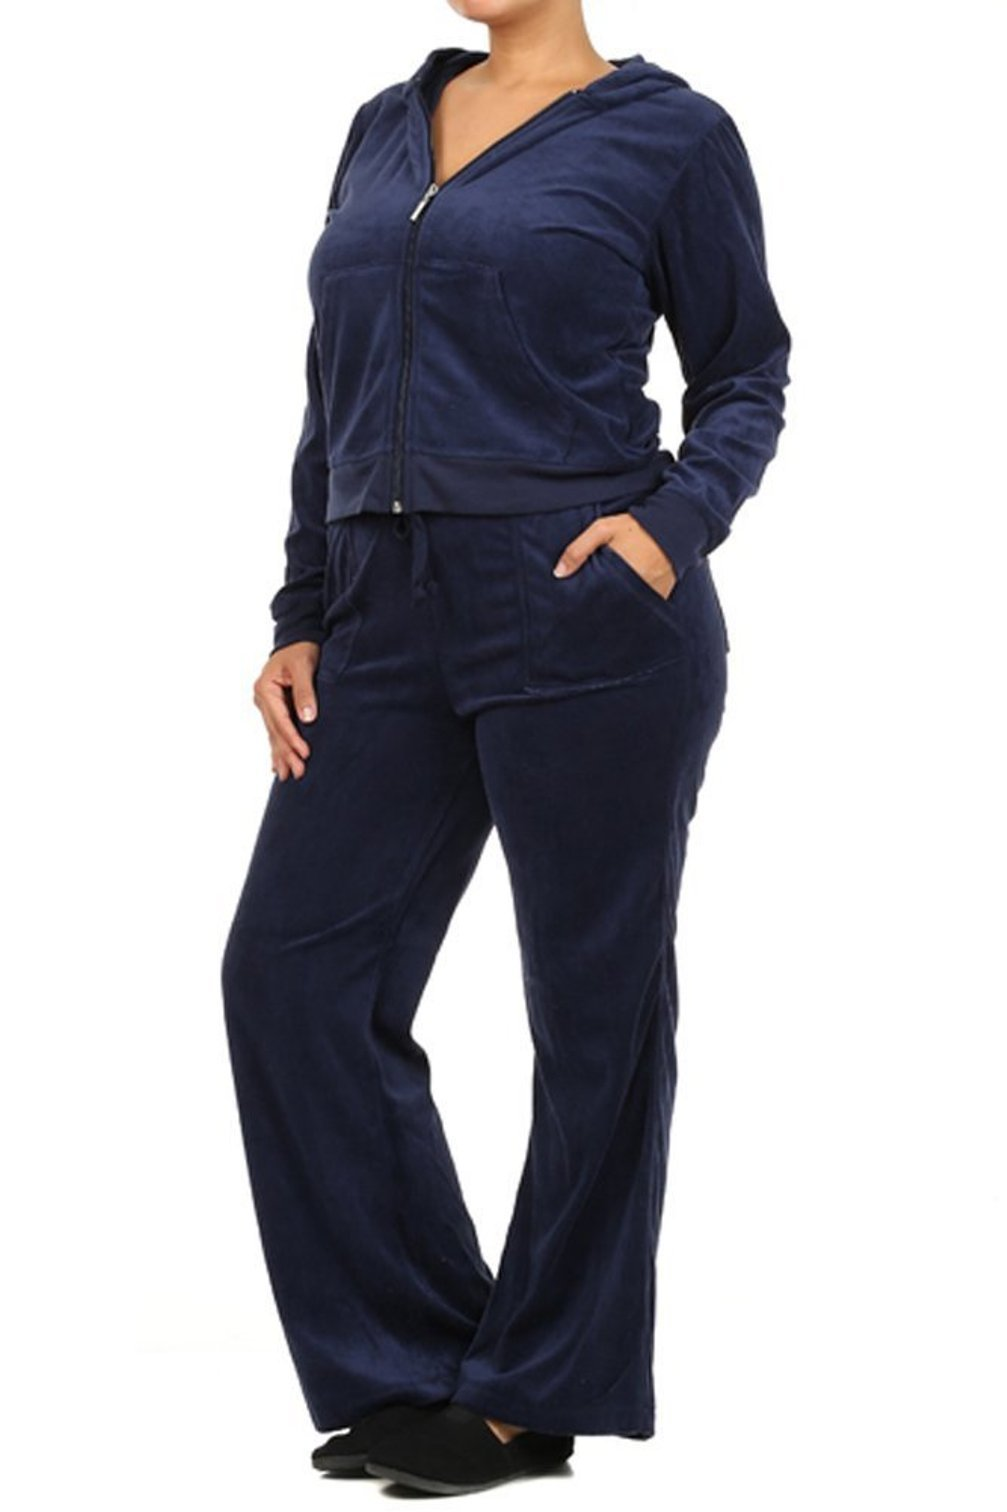 2 Piece PLUS SIZE Womens Velour set Hoodie winter Track Suit WITH LACE ON TOP (3X, navy blue)